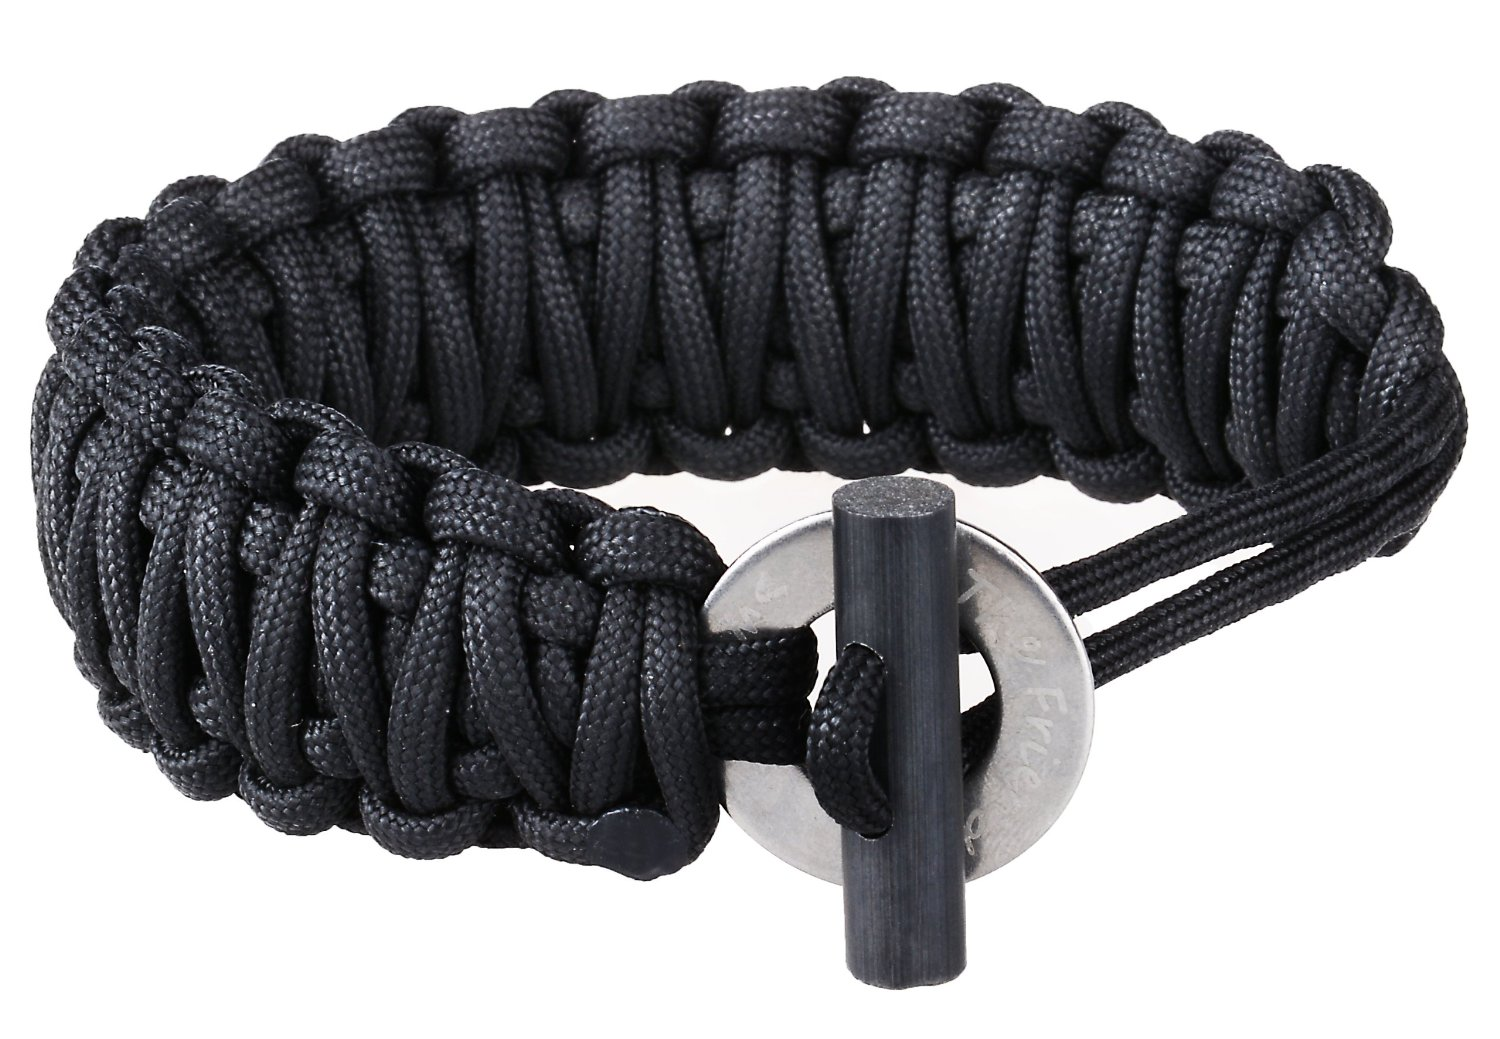 Find great deals on eBay for Survival Straps in Survival and Emergency Gear for Hiking or Camping. Shop with confidence.